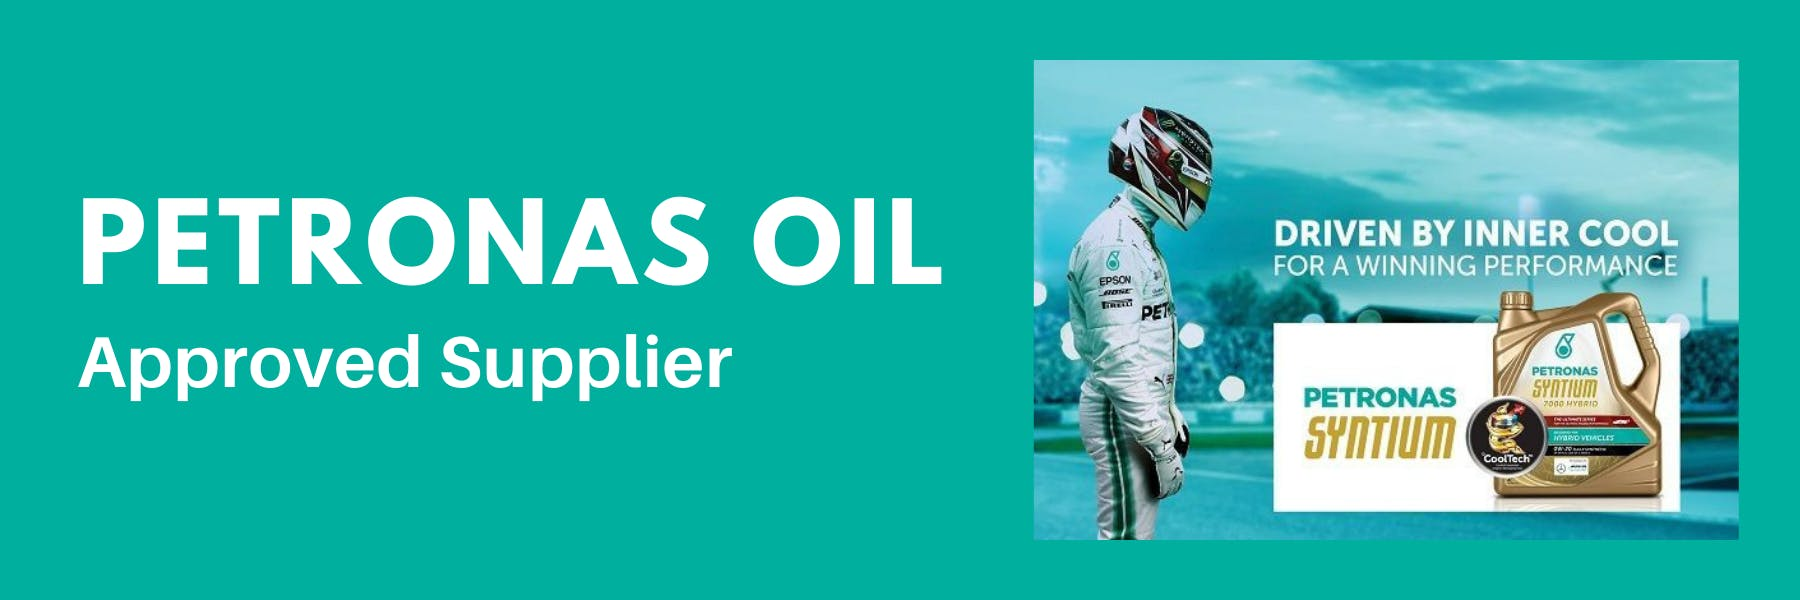 Petronas Approved Supplier